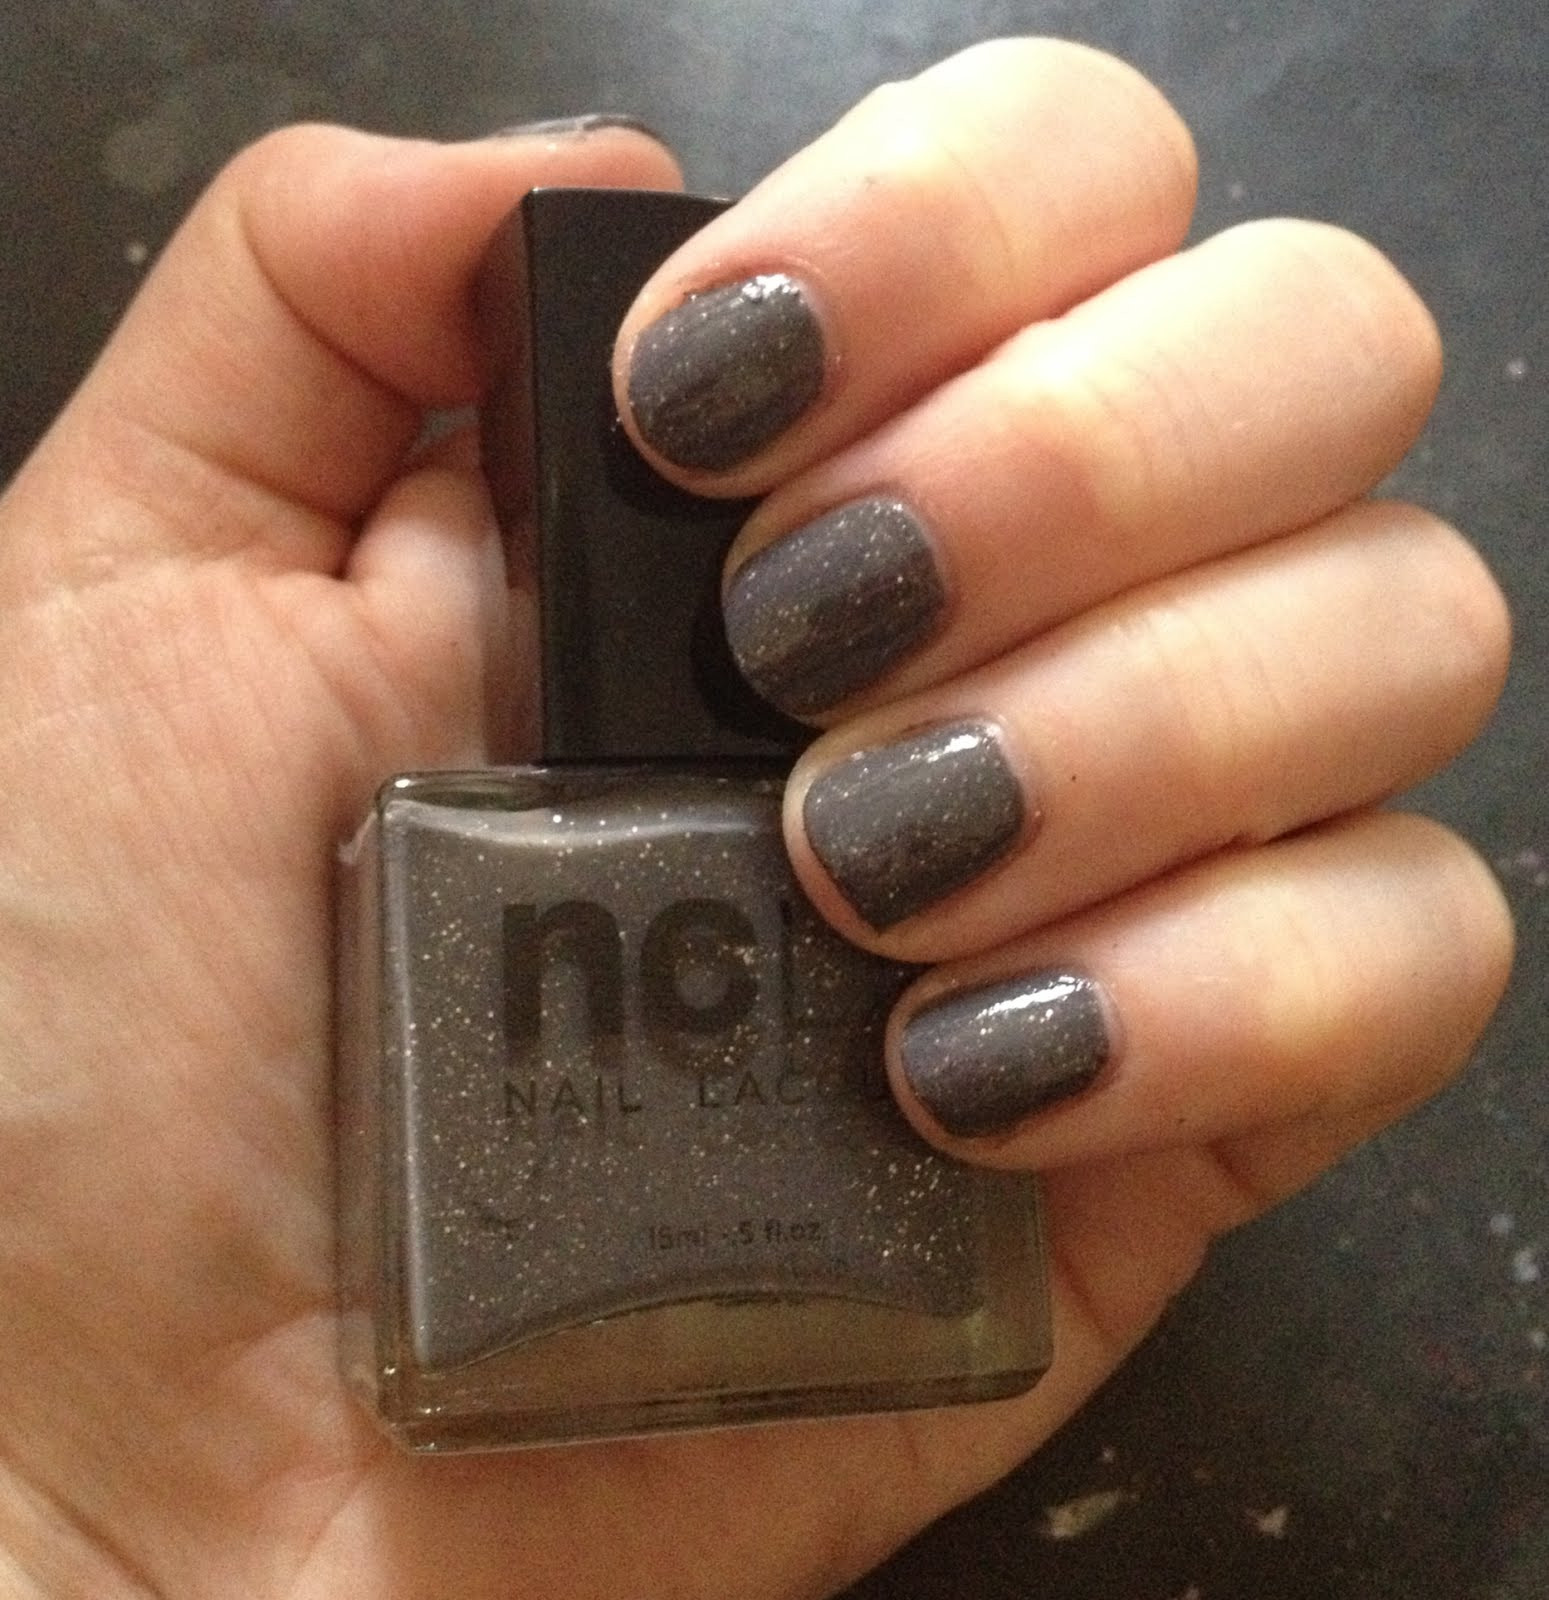 Solid Nail Colors  The Beauty of Life My Latest Mani NCLA Rock Solid